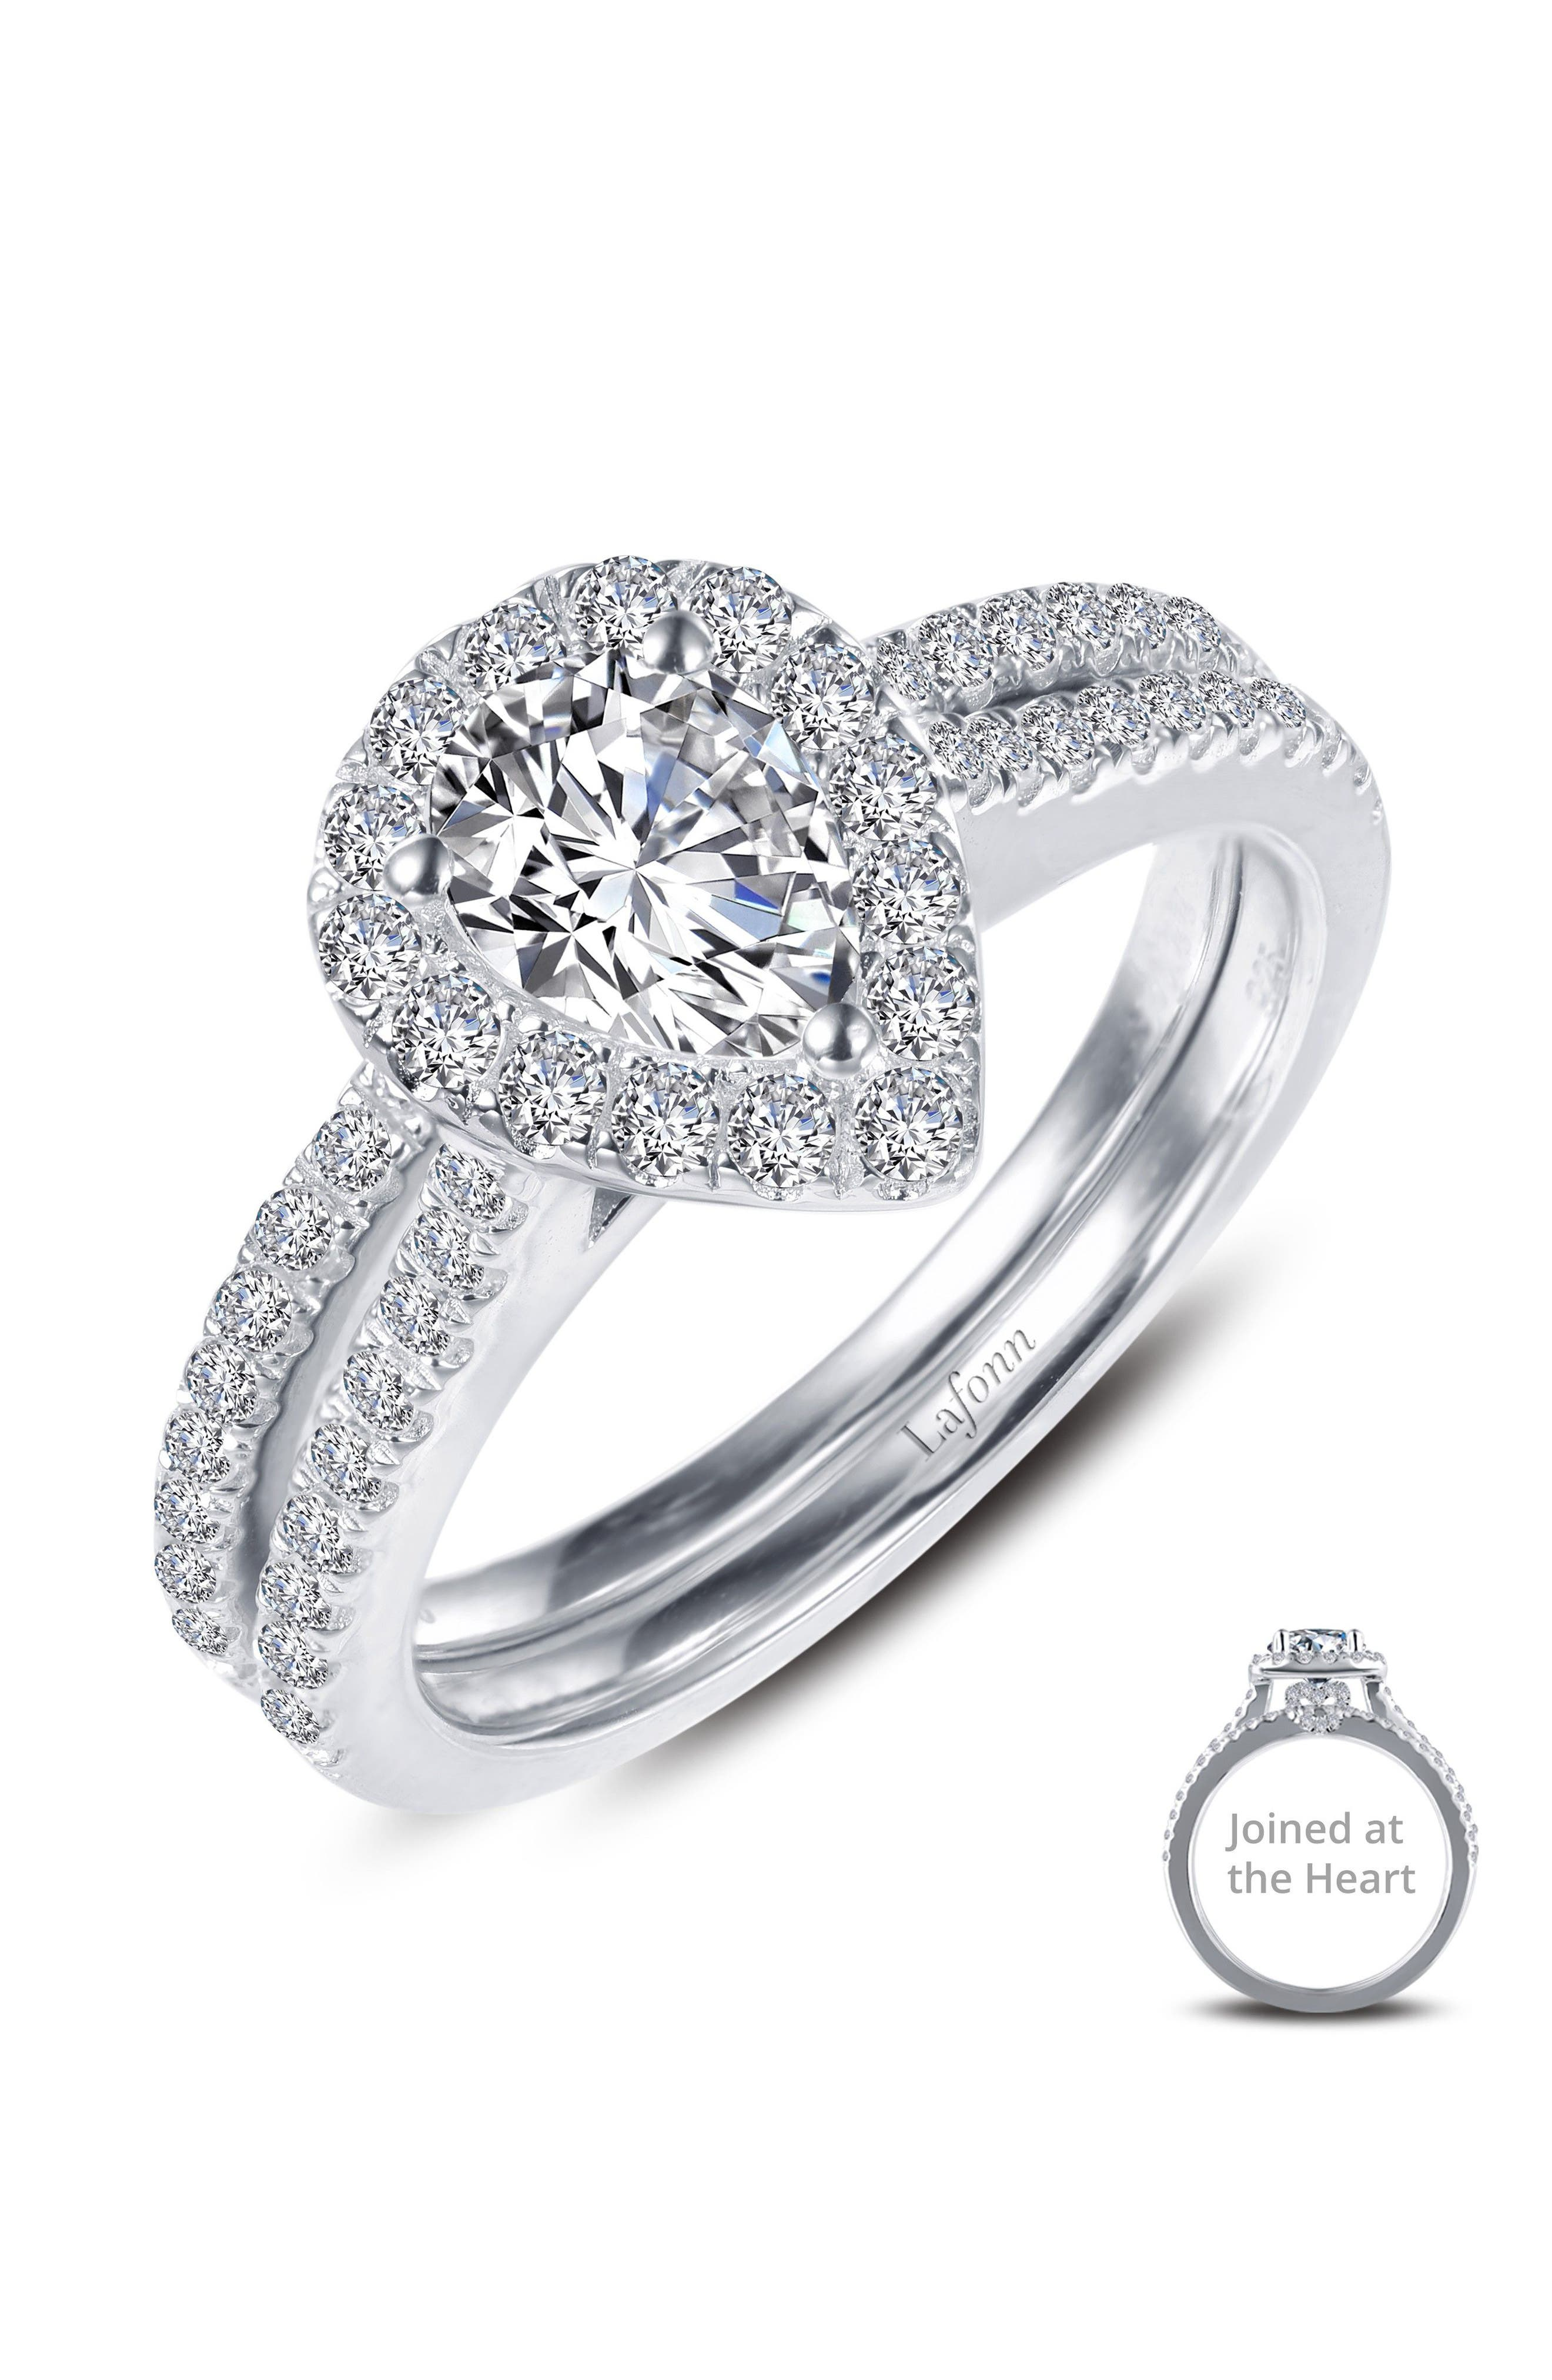 Joined at the Heart Pear-Shaped Halo Ring,                             Alternate thumbnail 3, color,                             SILVER/ CLEAR